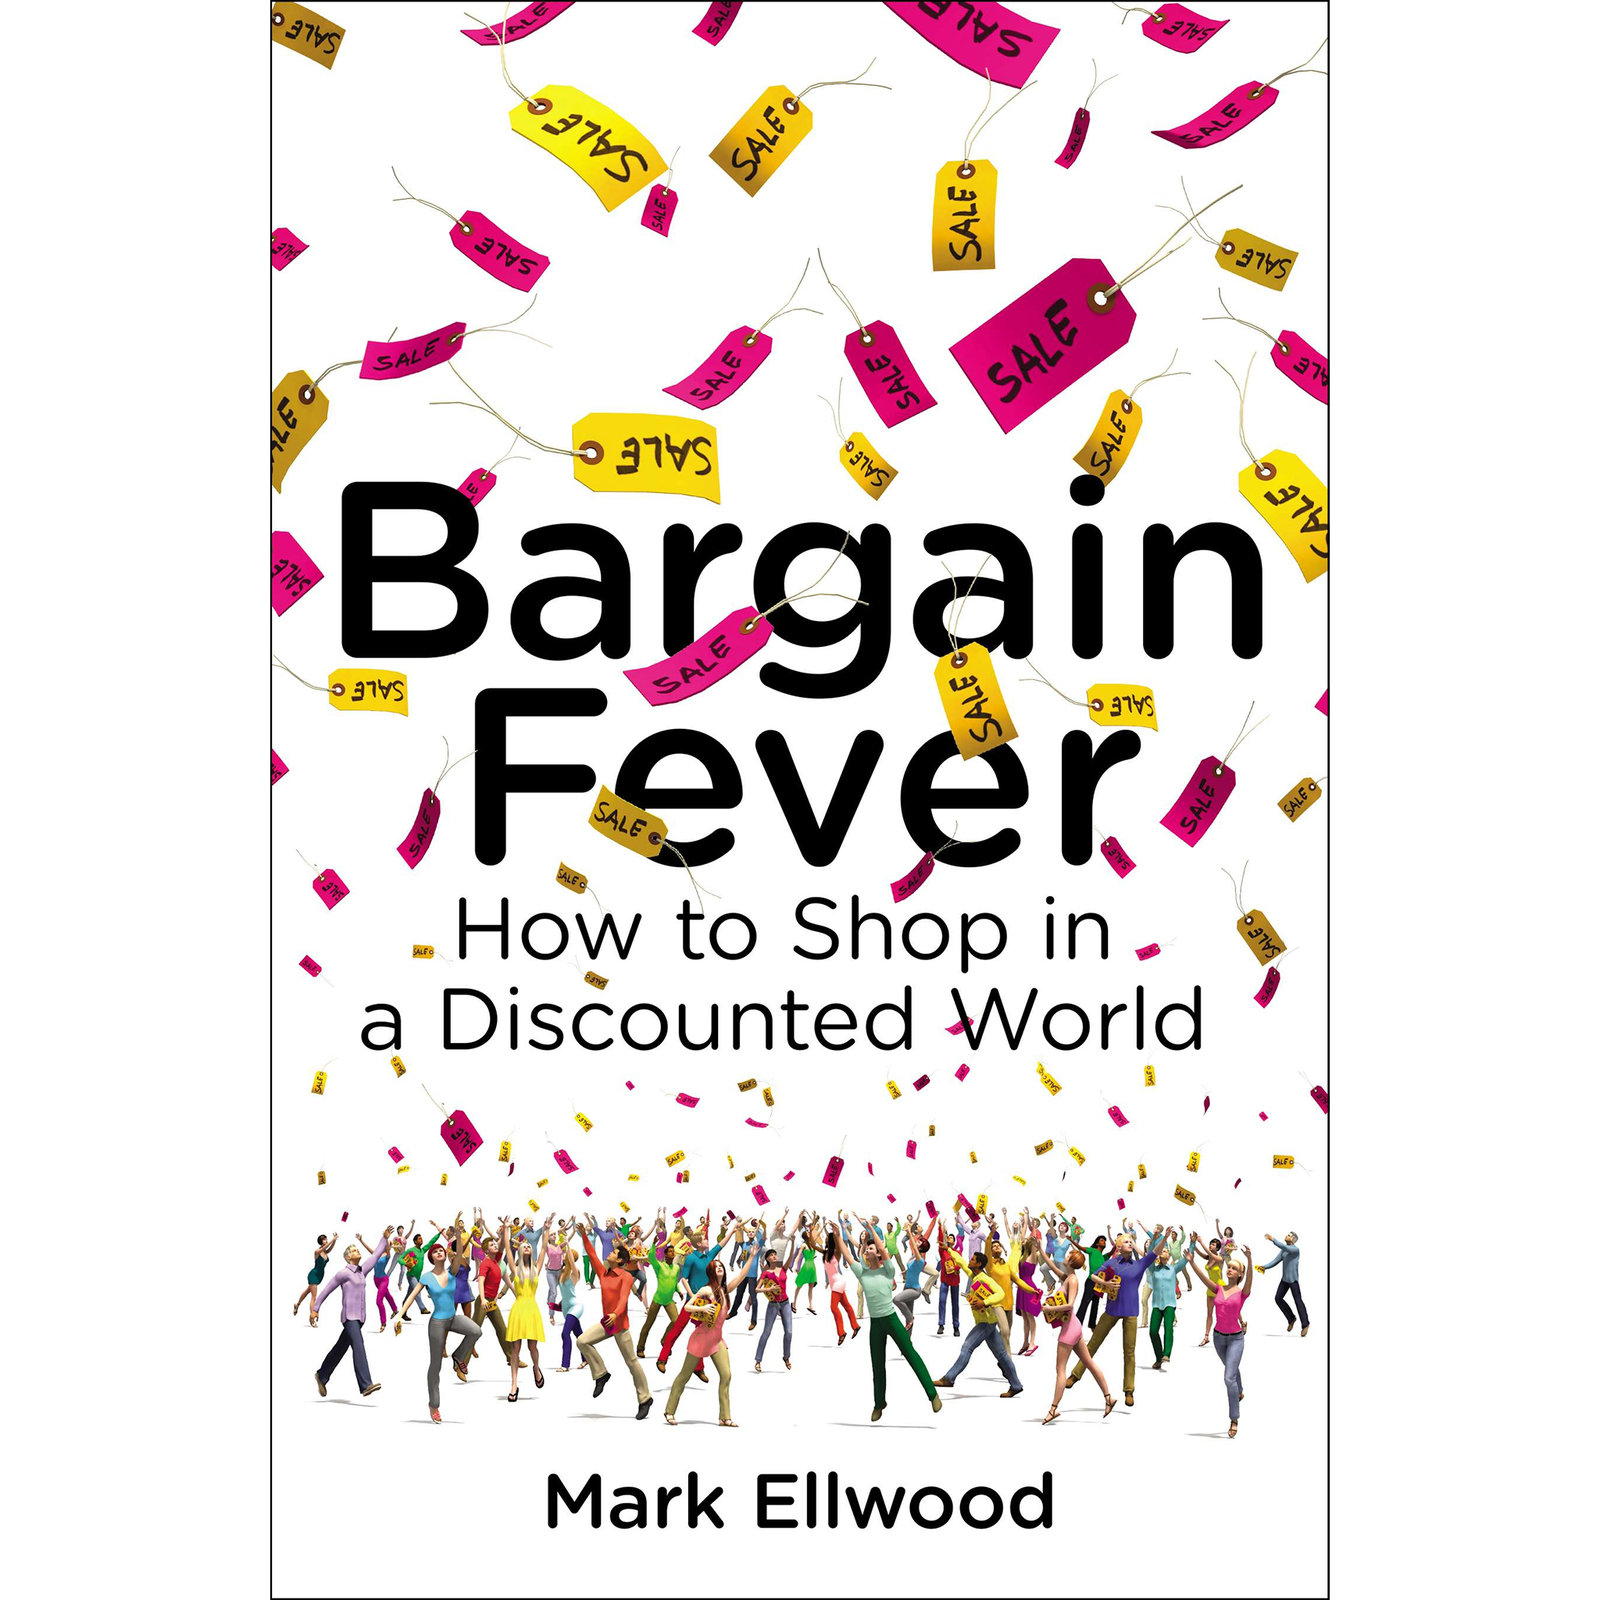 BOOK0315-bargain-fever.jpg